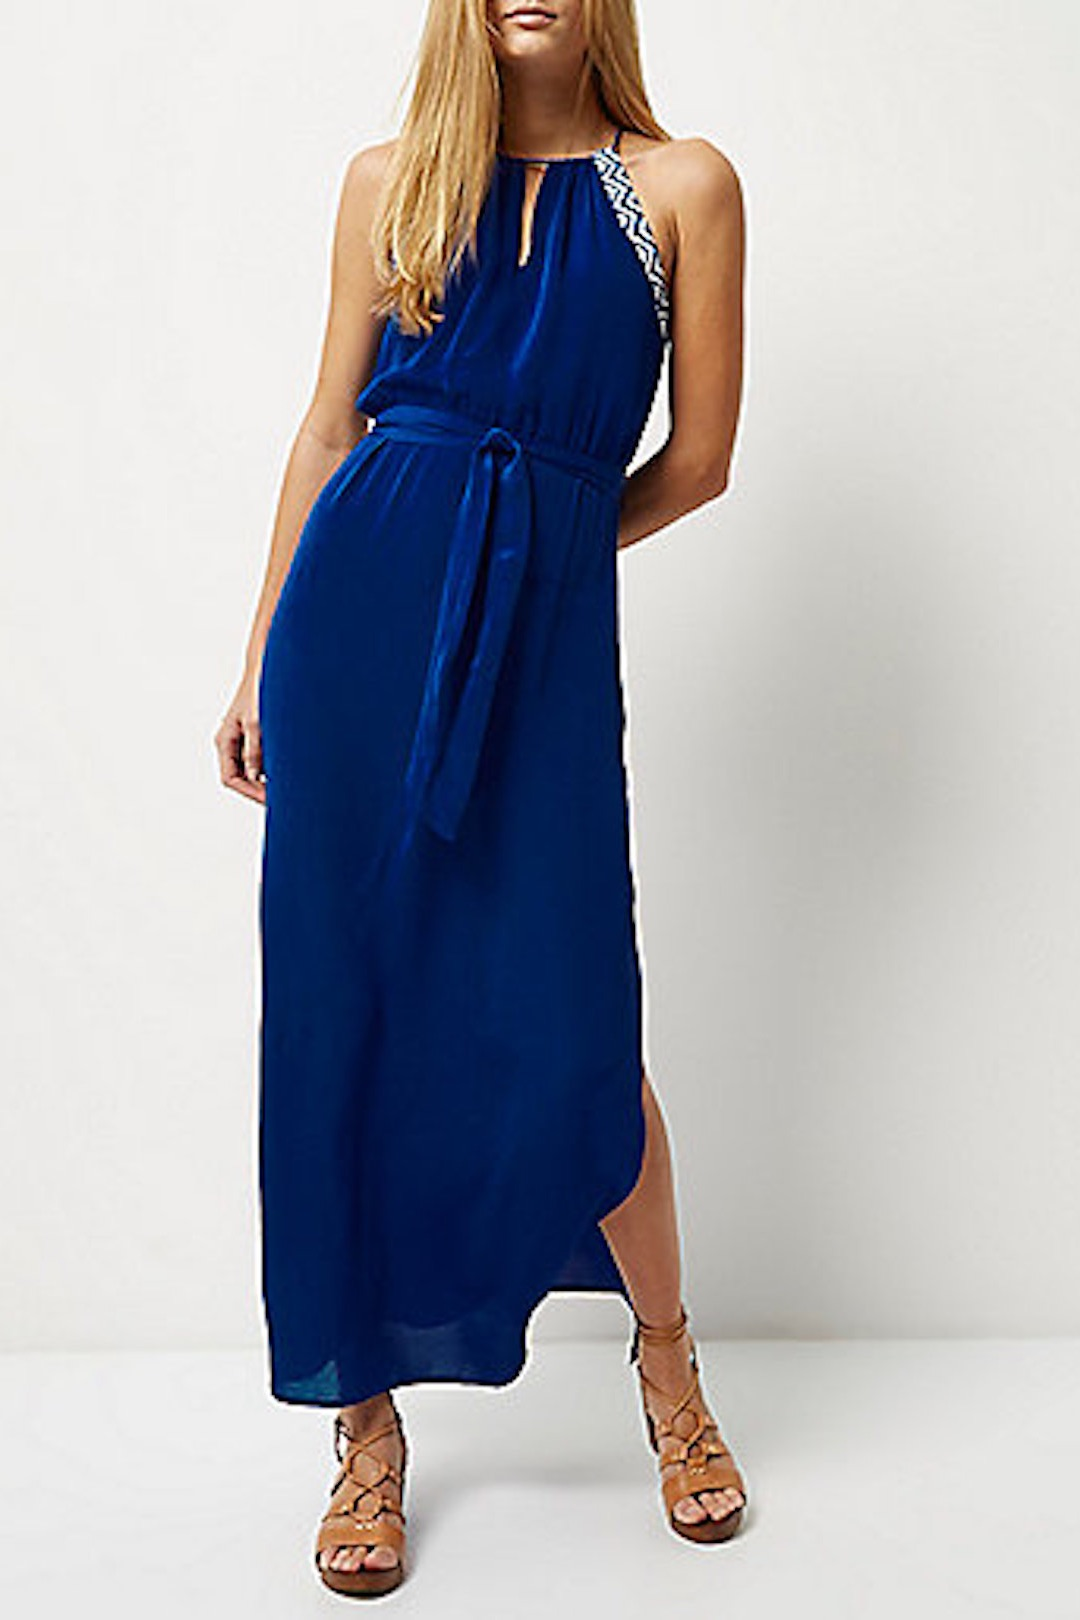 Dresses For Wedding Guest River Island : Wedding guest dresses the budget babe fashion